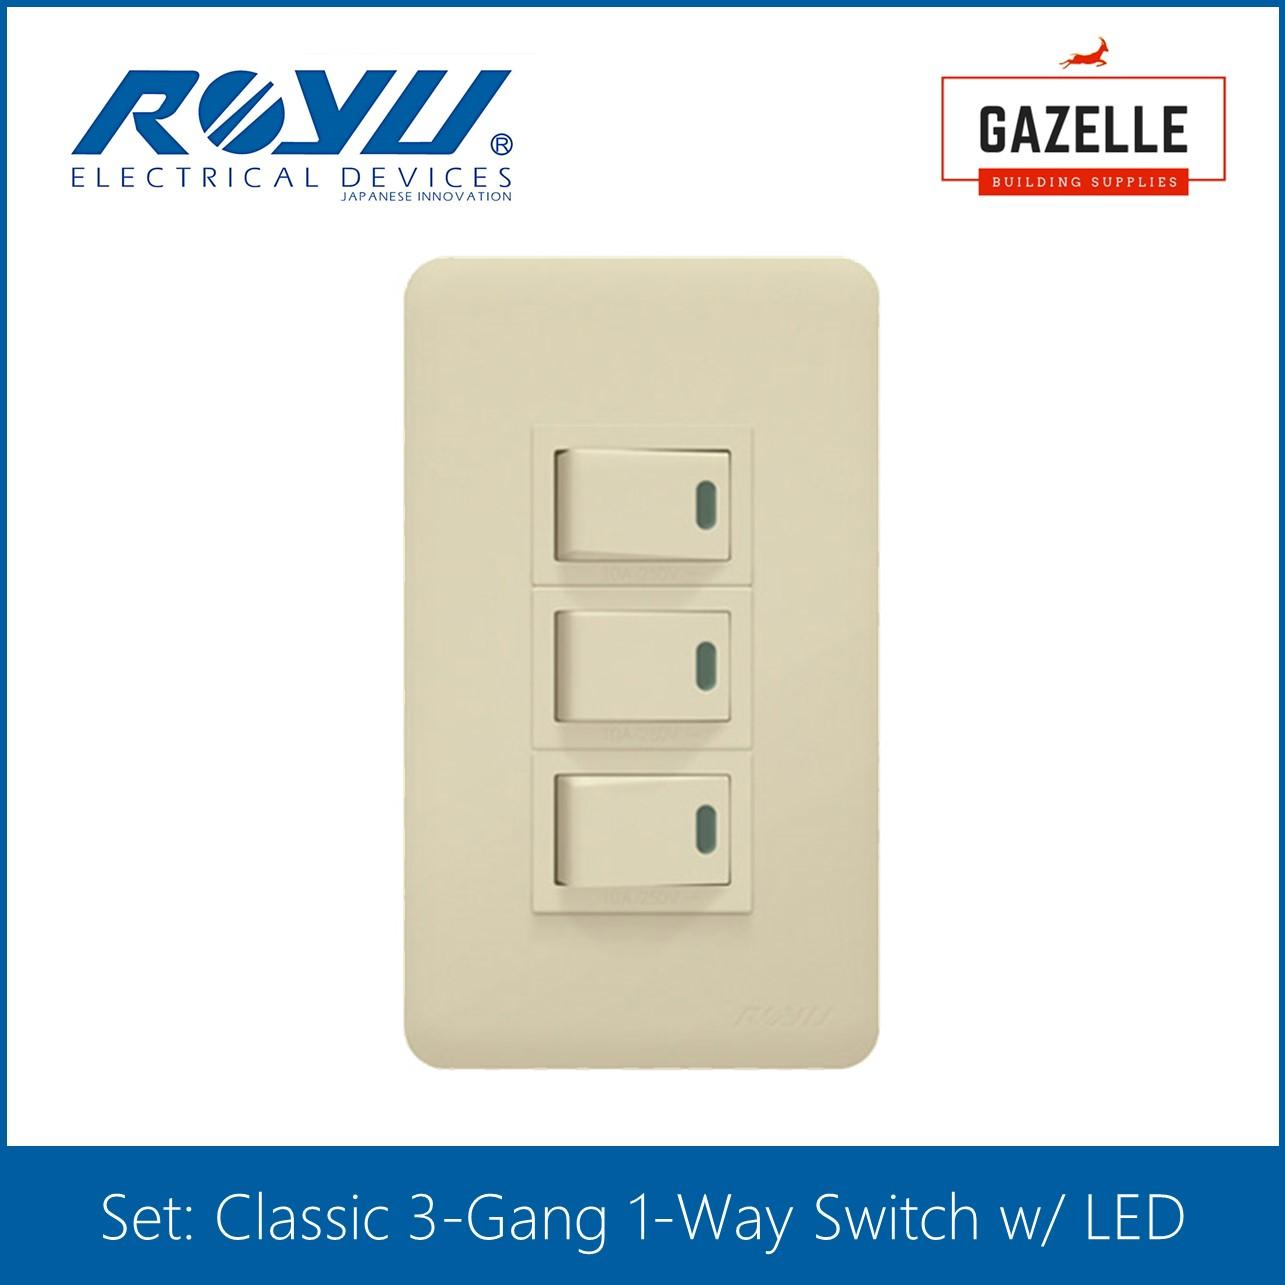 Price and specification 1 box royu thhn stranded wire 3 5mm new royu classic series 3 gang 1 way switch w led greentooth Image collections